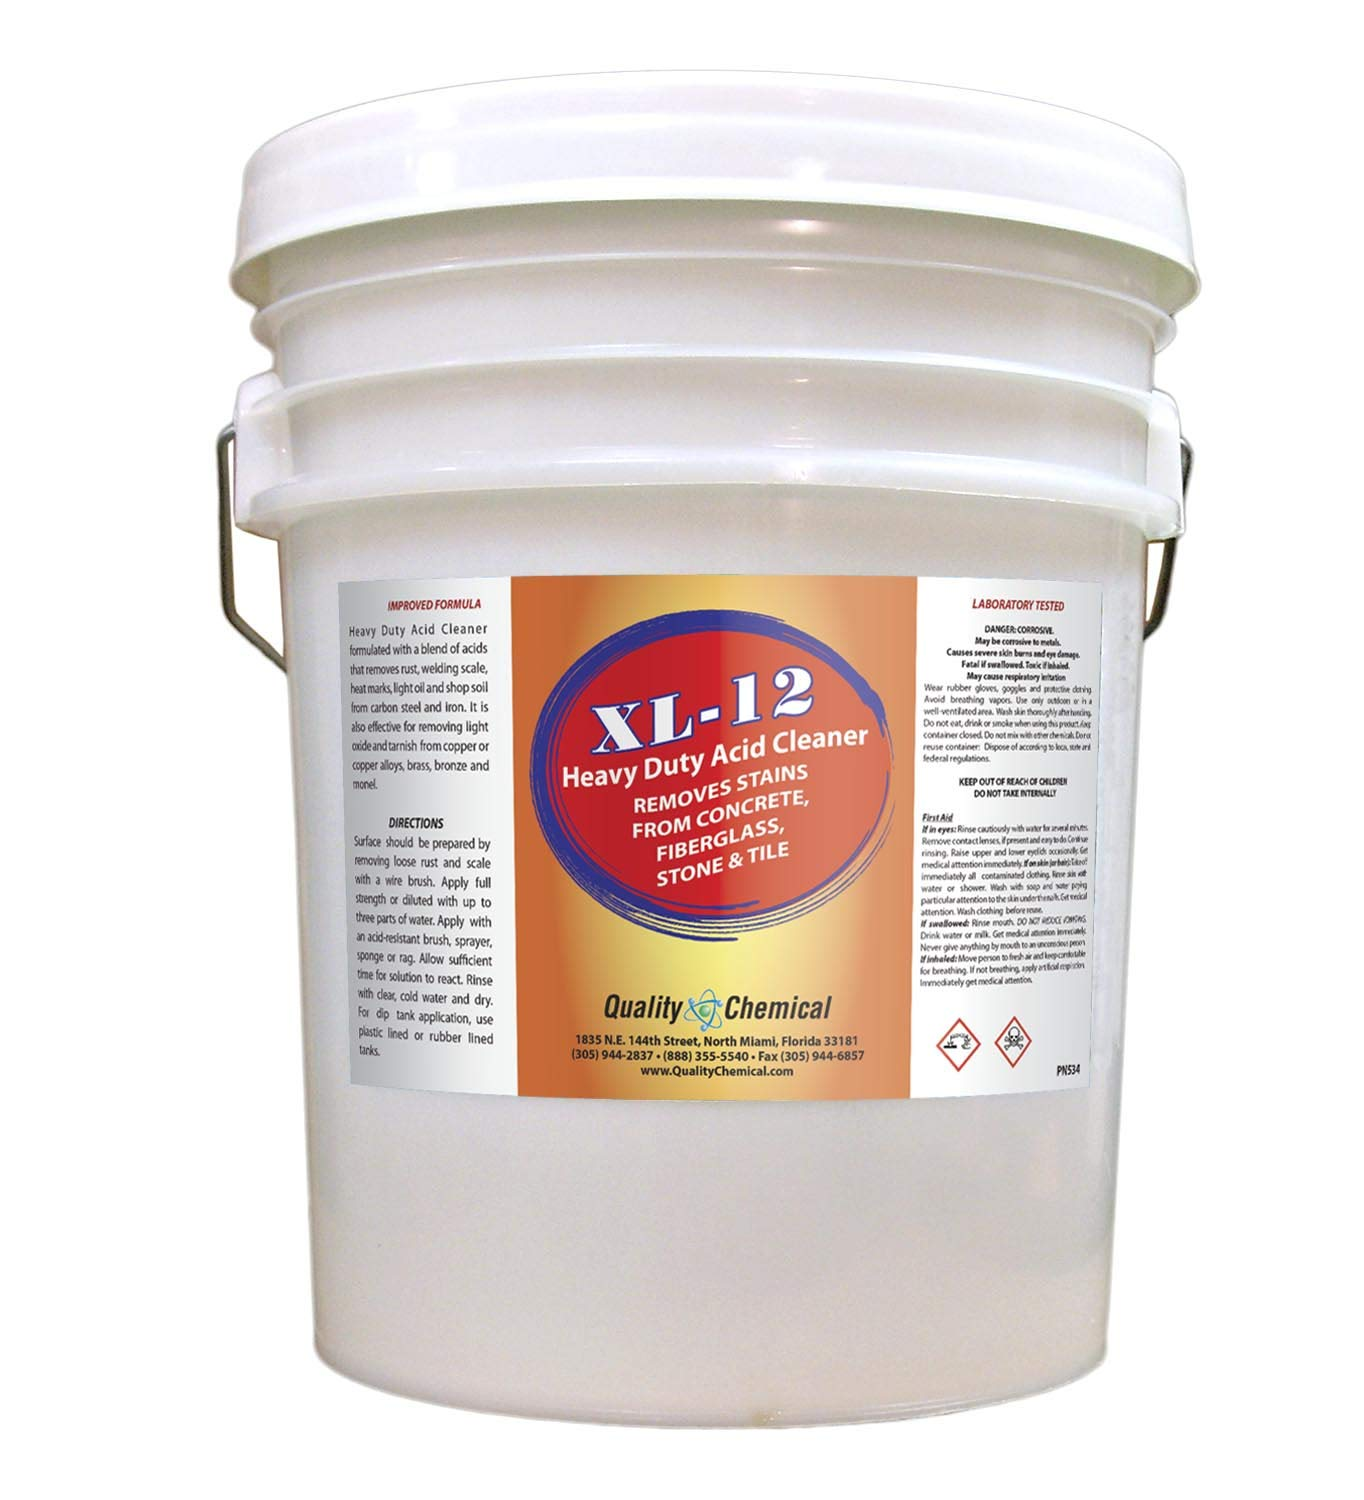 Amazoncom Xl 12 High Power Acid Cleaner Formulated To Remove Rust